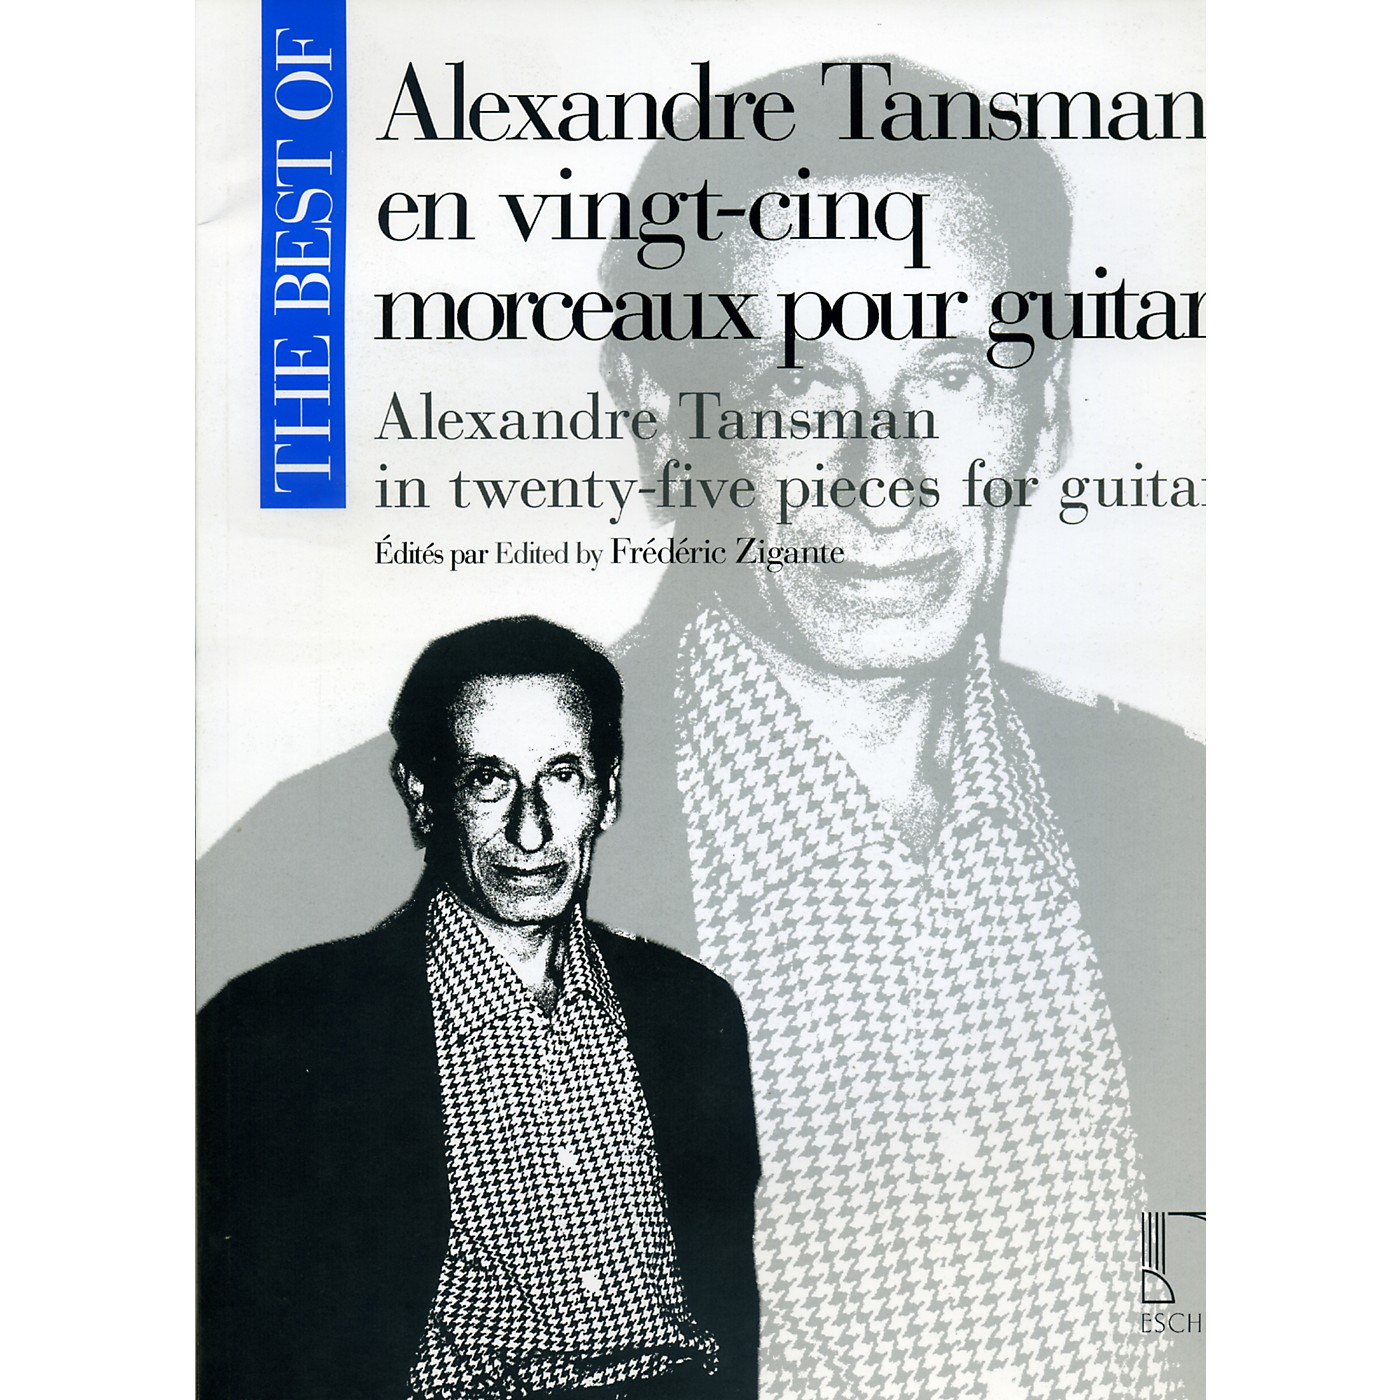 Durand The Best Of Alexandre Tansman In Twenty-Five Pieces For Guitar thumbnail